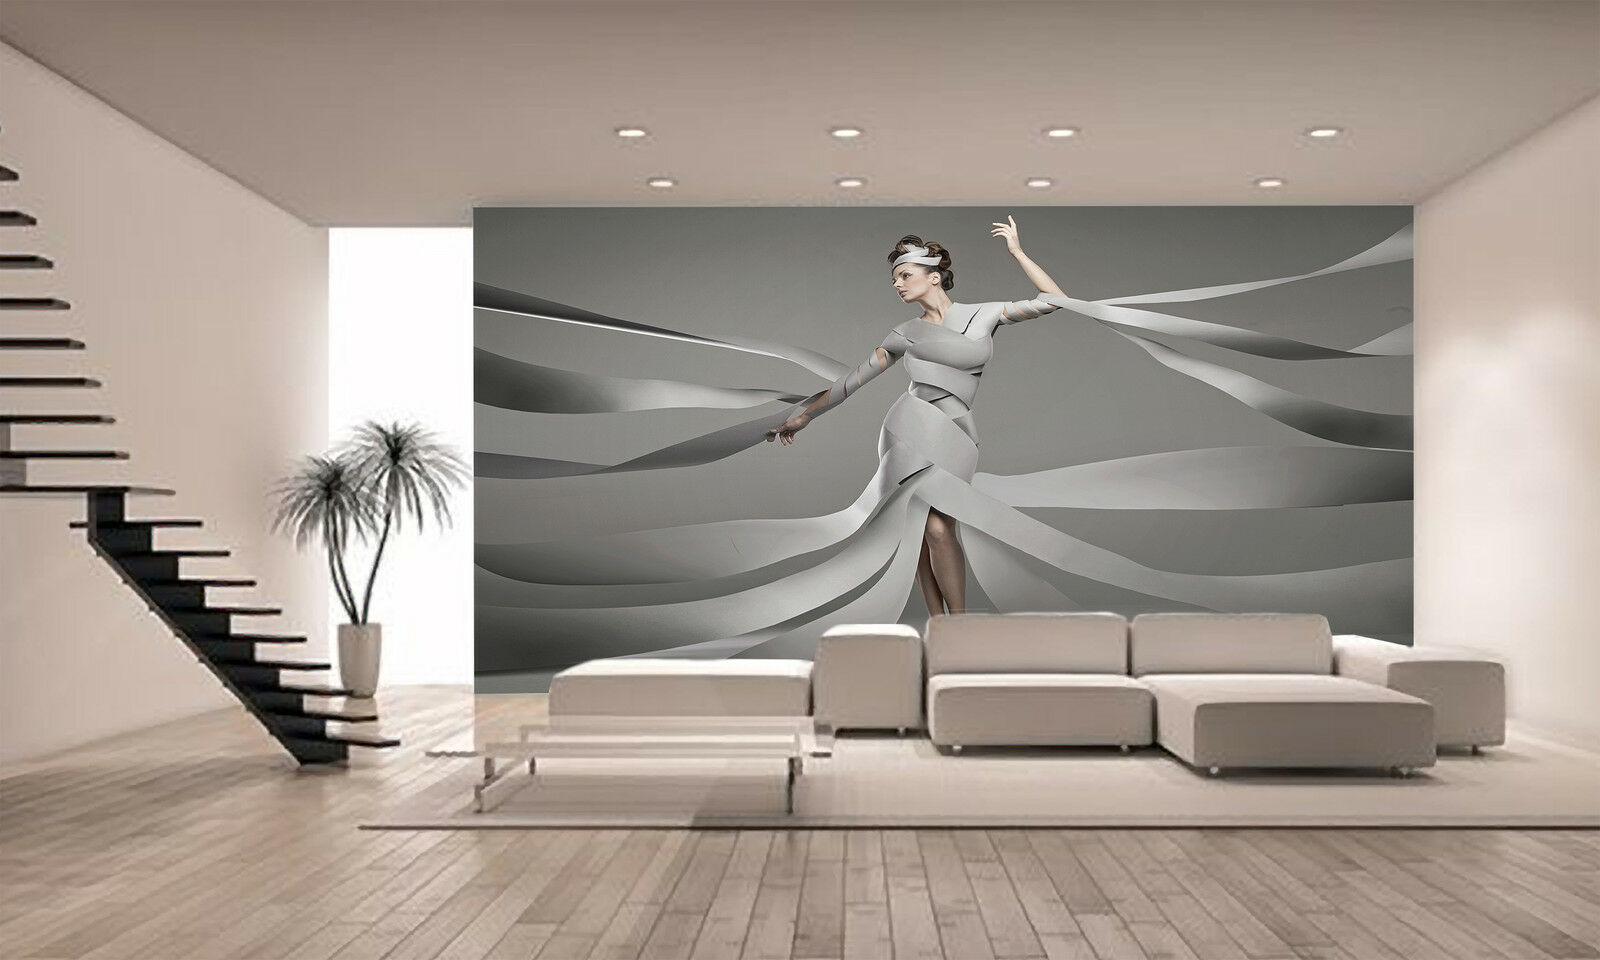 Fashion Photo Wall Mural Photo Wallpaper GIANT DECOR Paper Poster Free Paste